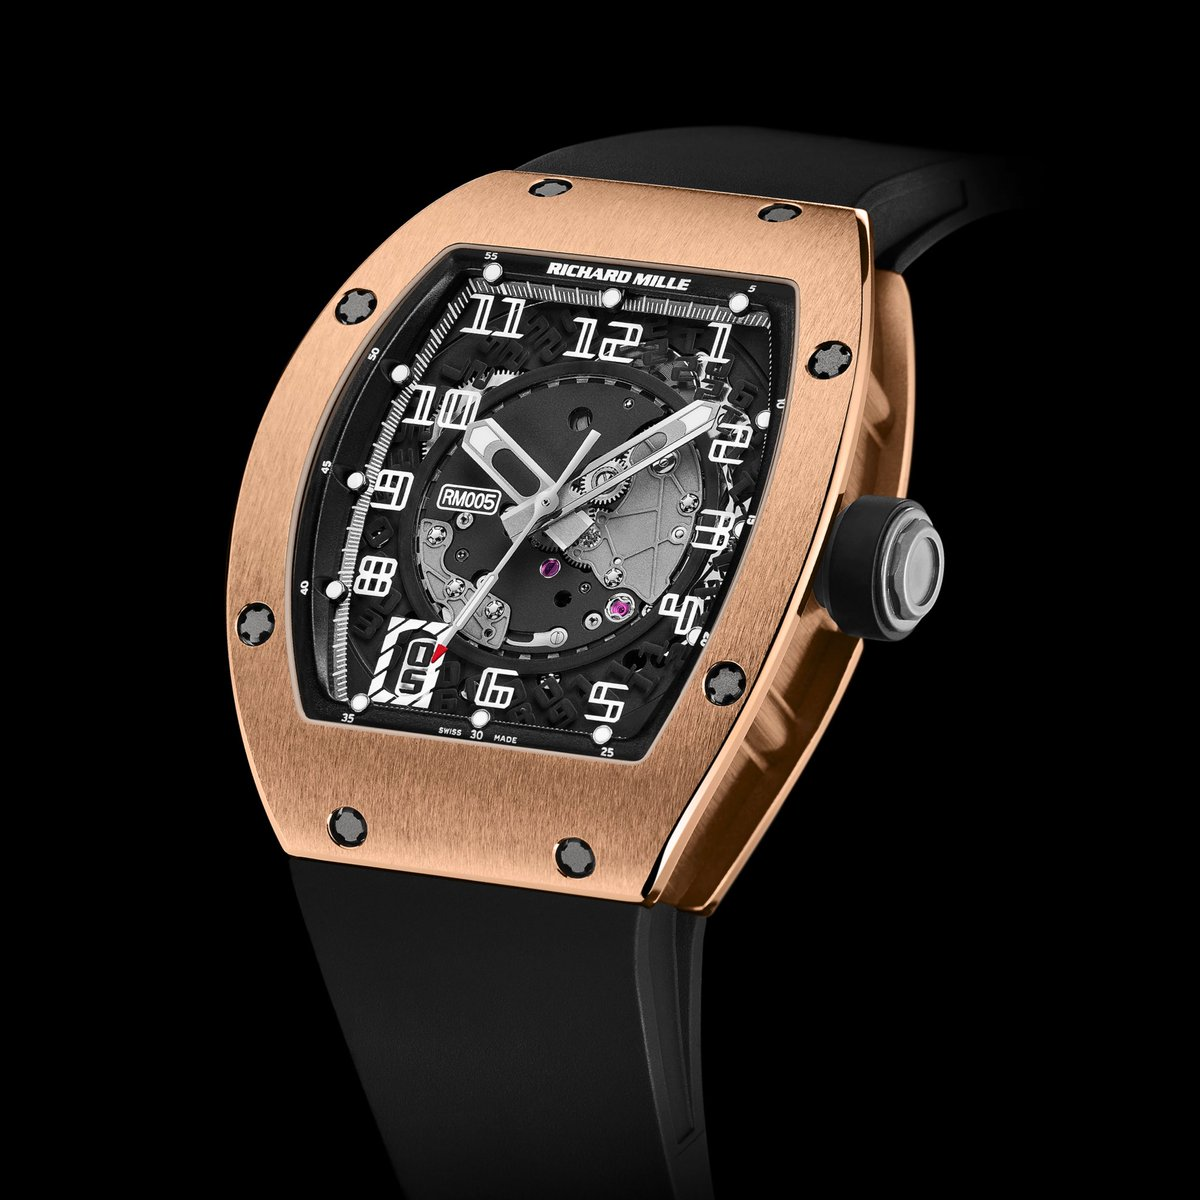 #Historicalmodels With its own powerful identity and technicity applied since the brand's creation the RM 005 defined the brand's range of automatic watches as with our tourbillon watches. #RichardMille https://t.co/Gb7DJcZbze